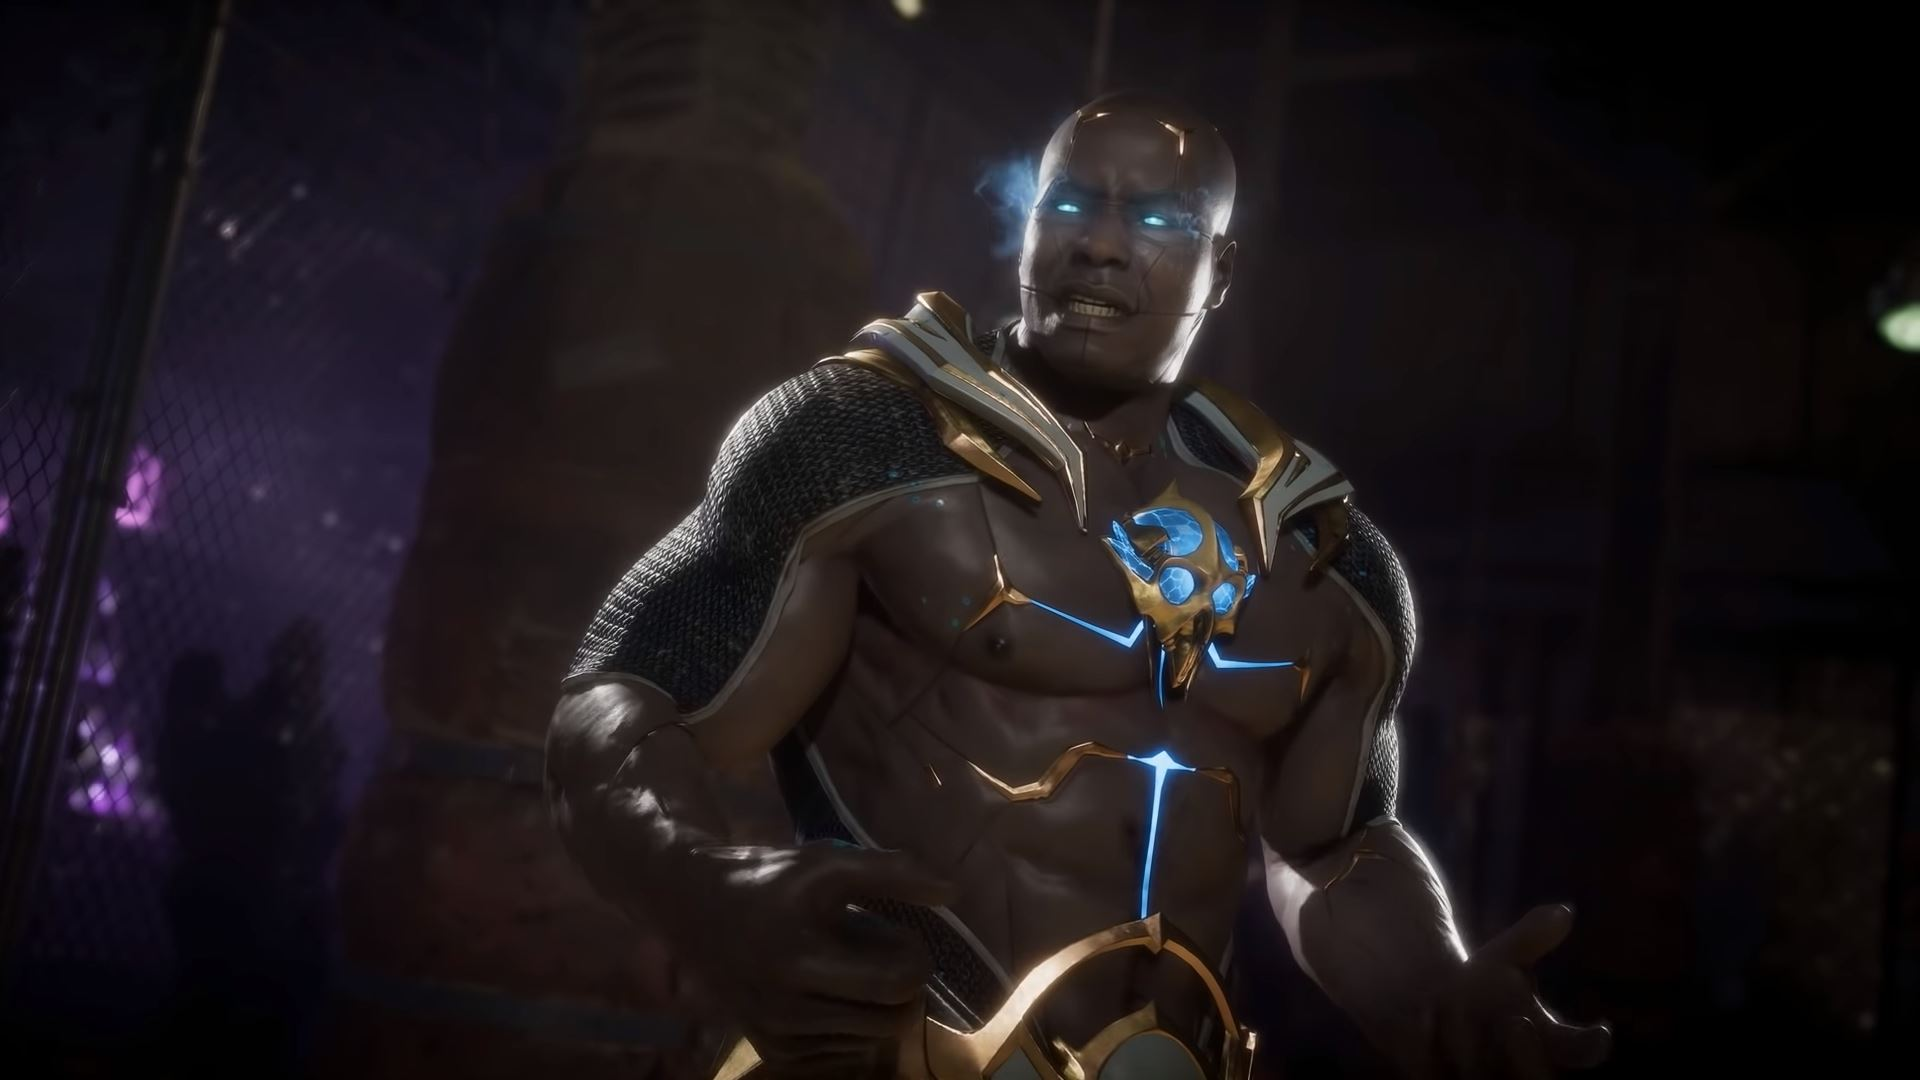 The Mortal Kombat 11 livestream revealed a brand new playable character, Geras.